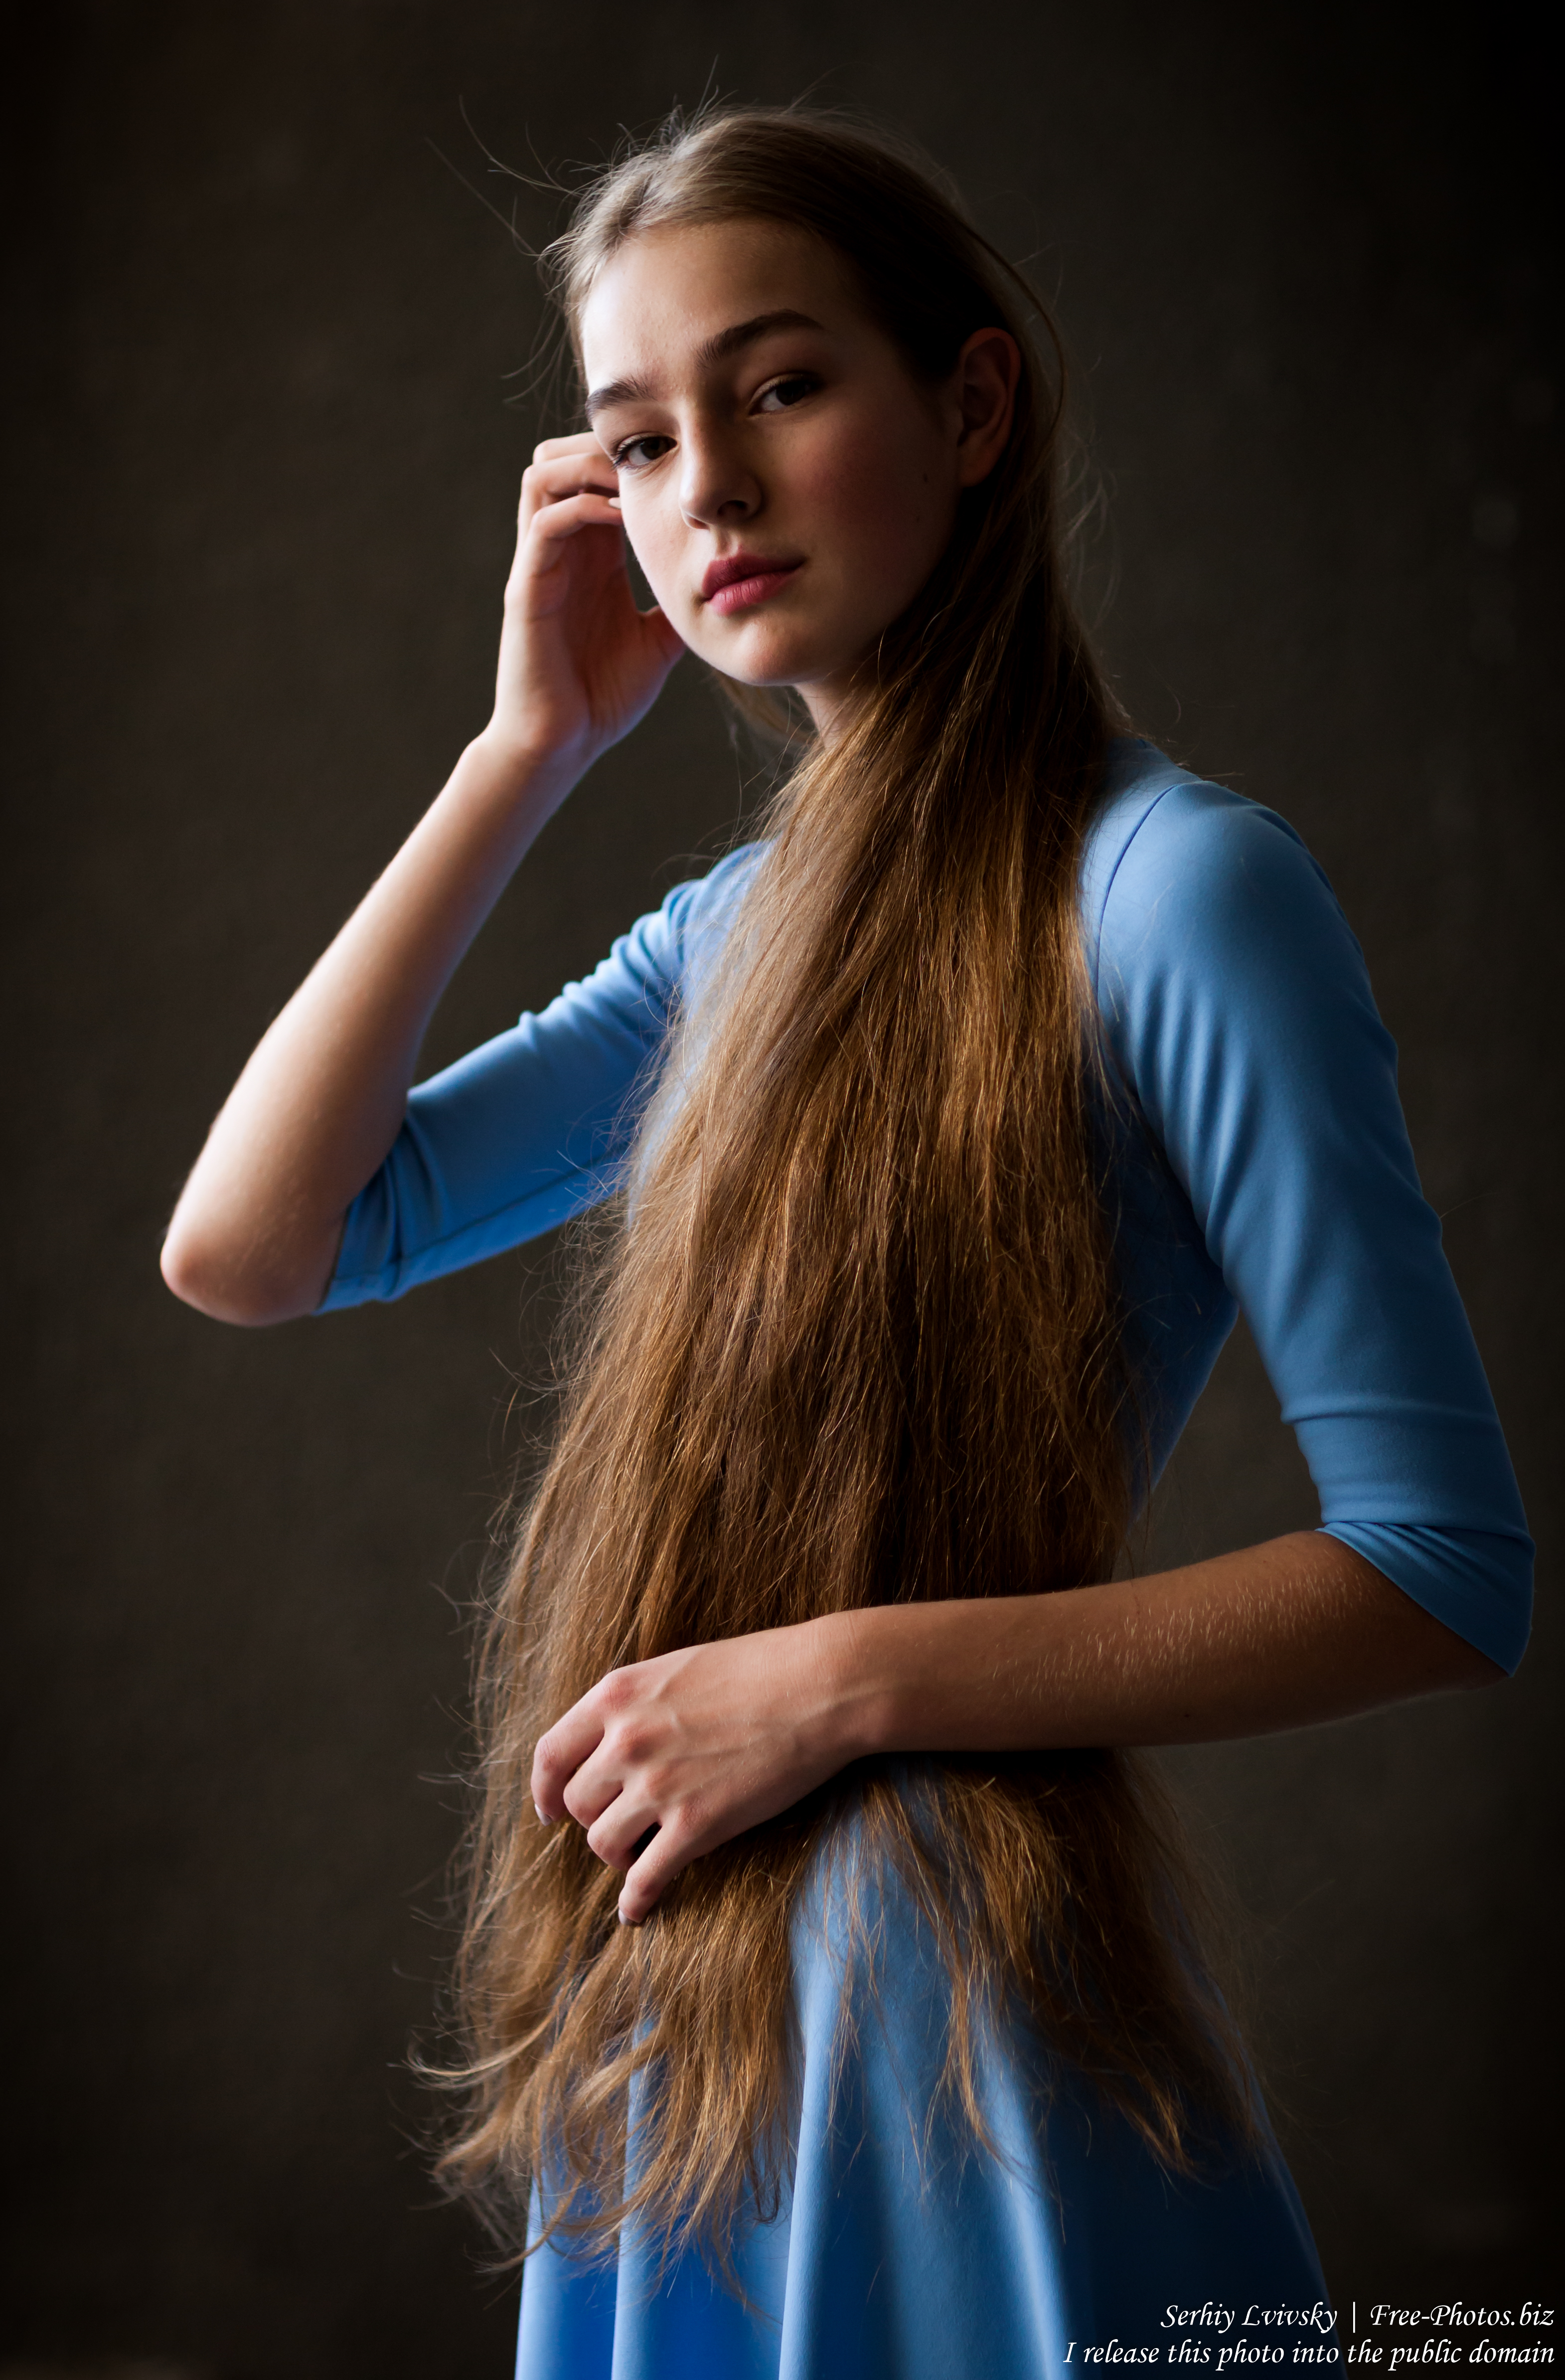 Justyna - a 16-year-old fair-haired girl photographed in June 2018 by Serhiy Lvivsky, picture 11